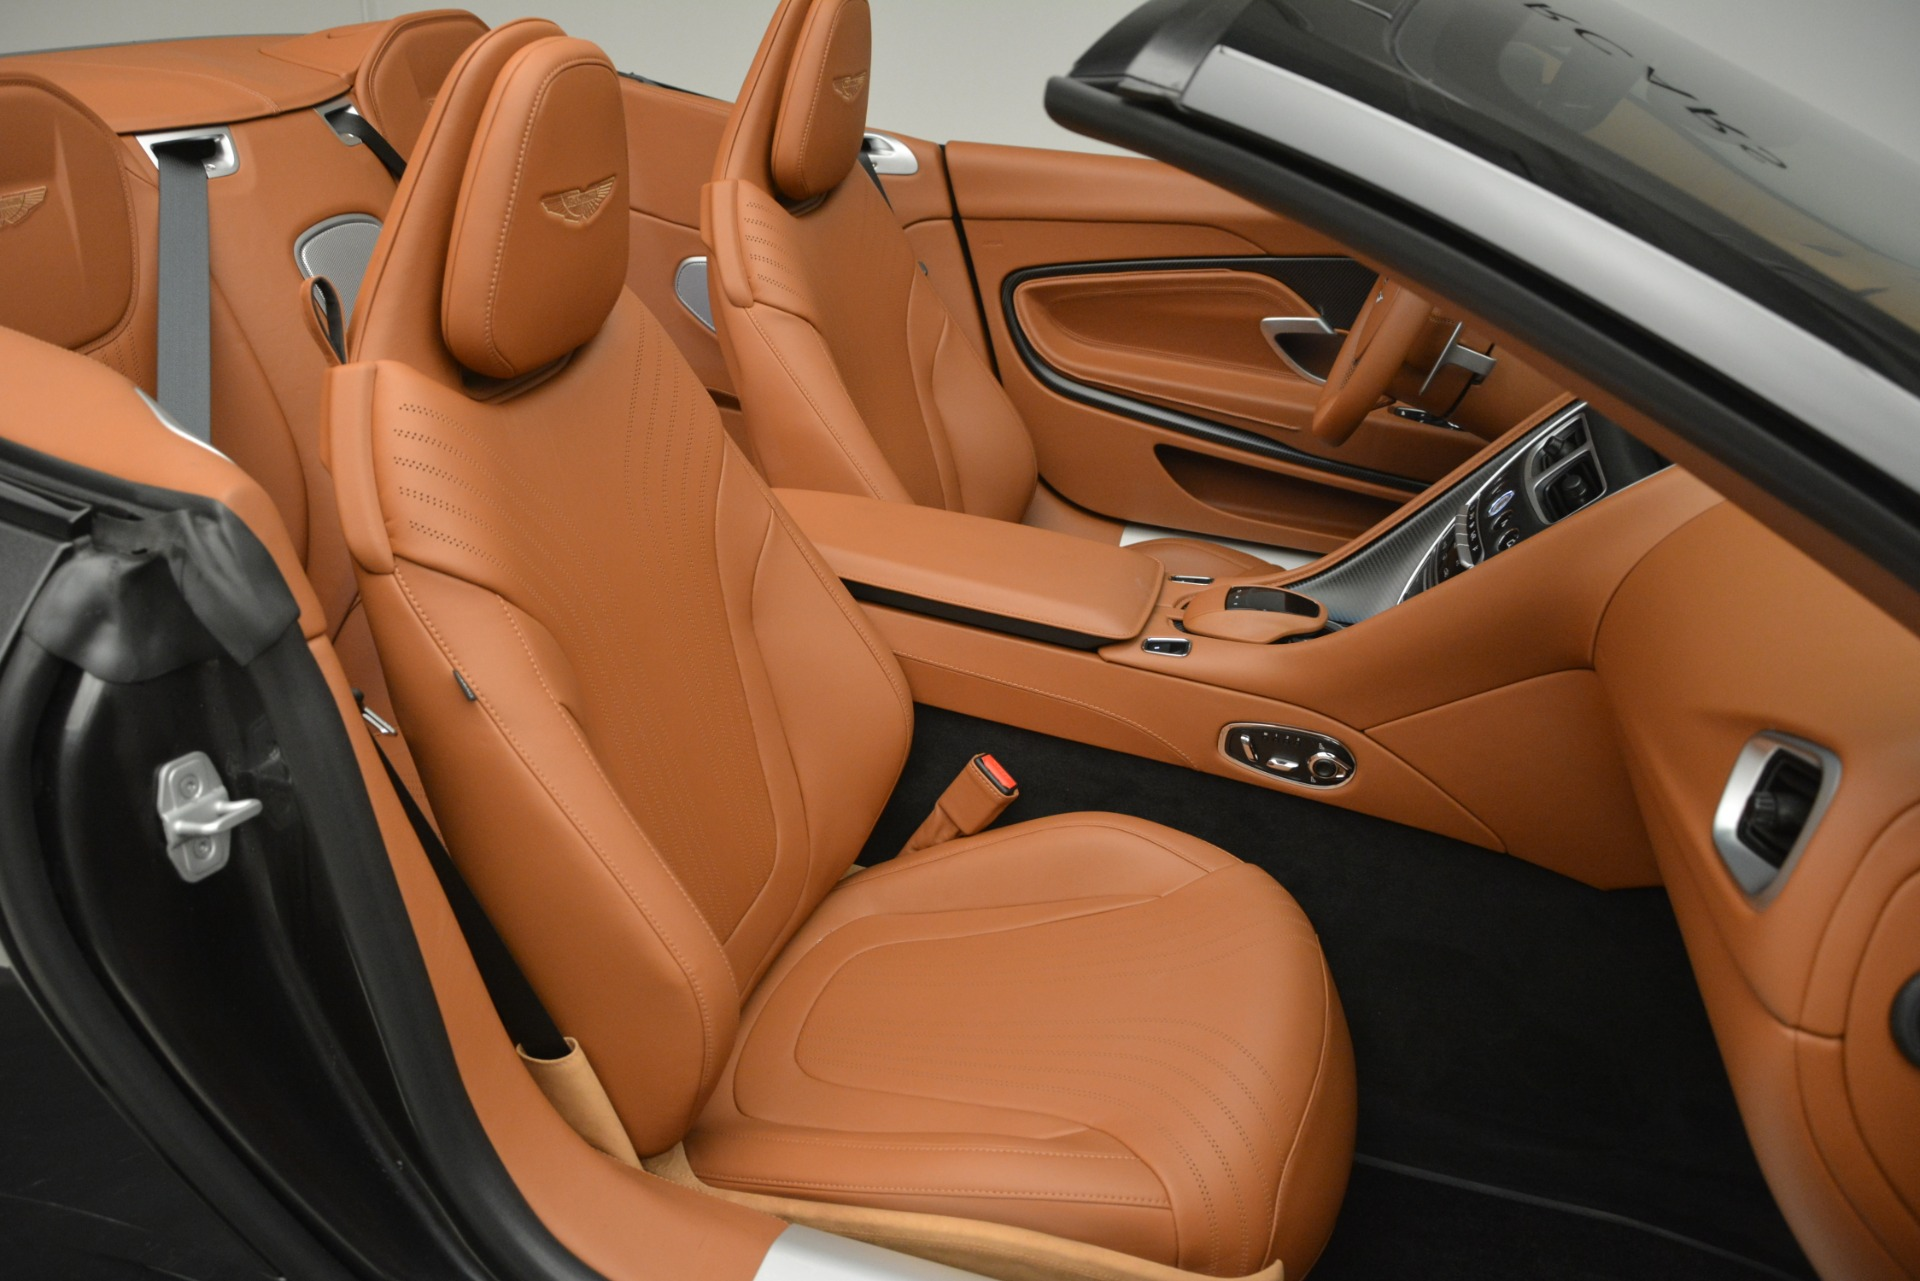 Used 2019 Aston Martin DB11 V8 Volante For Sale In Westport, CT 3434_p21